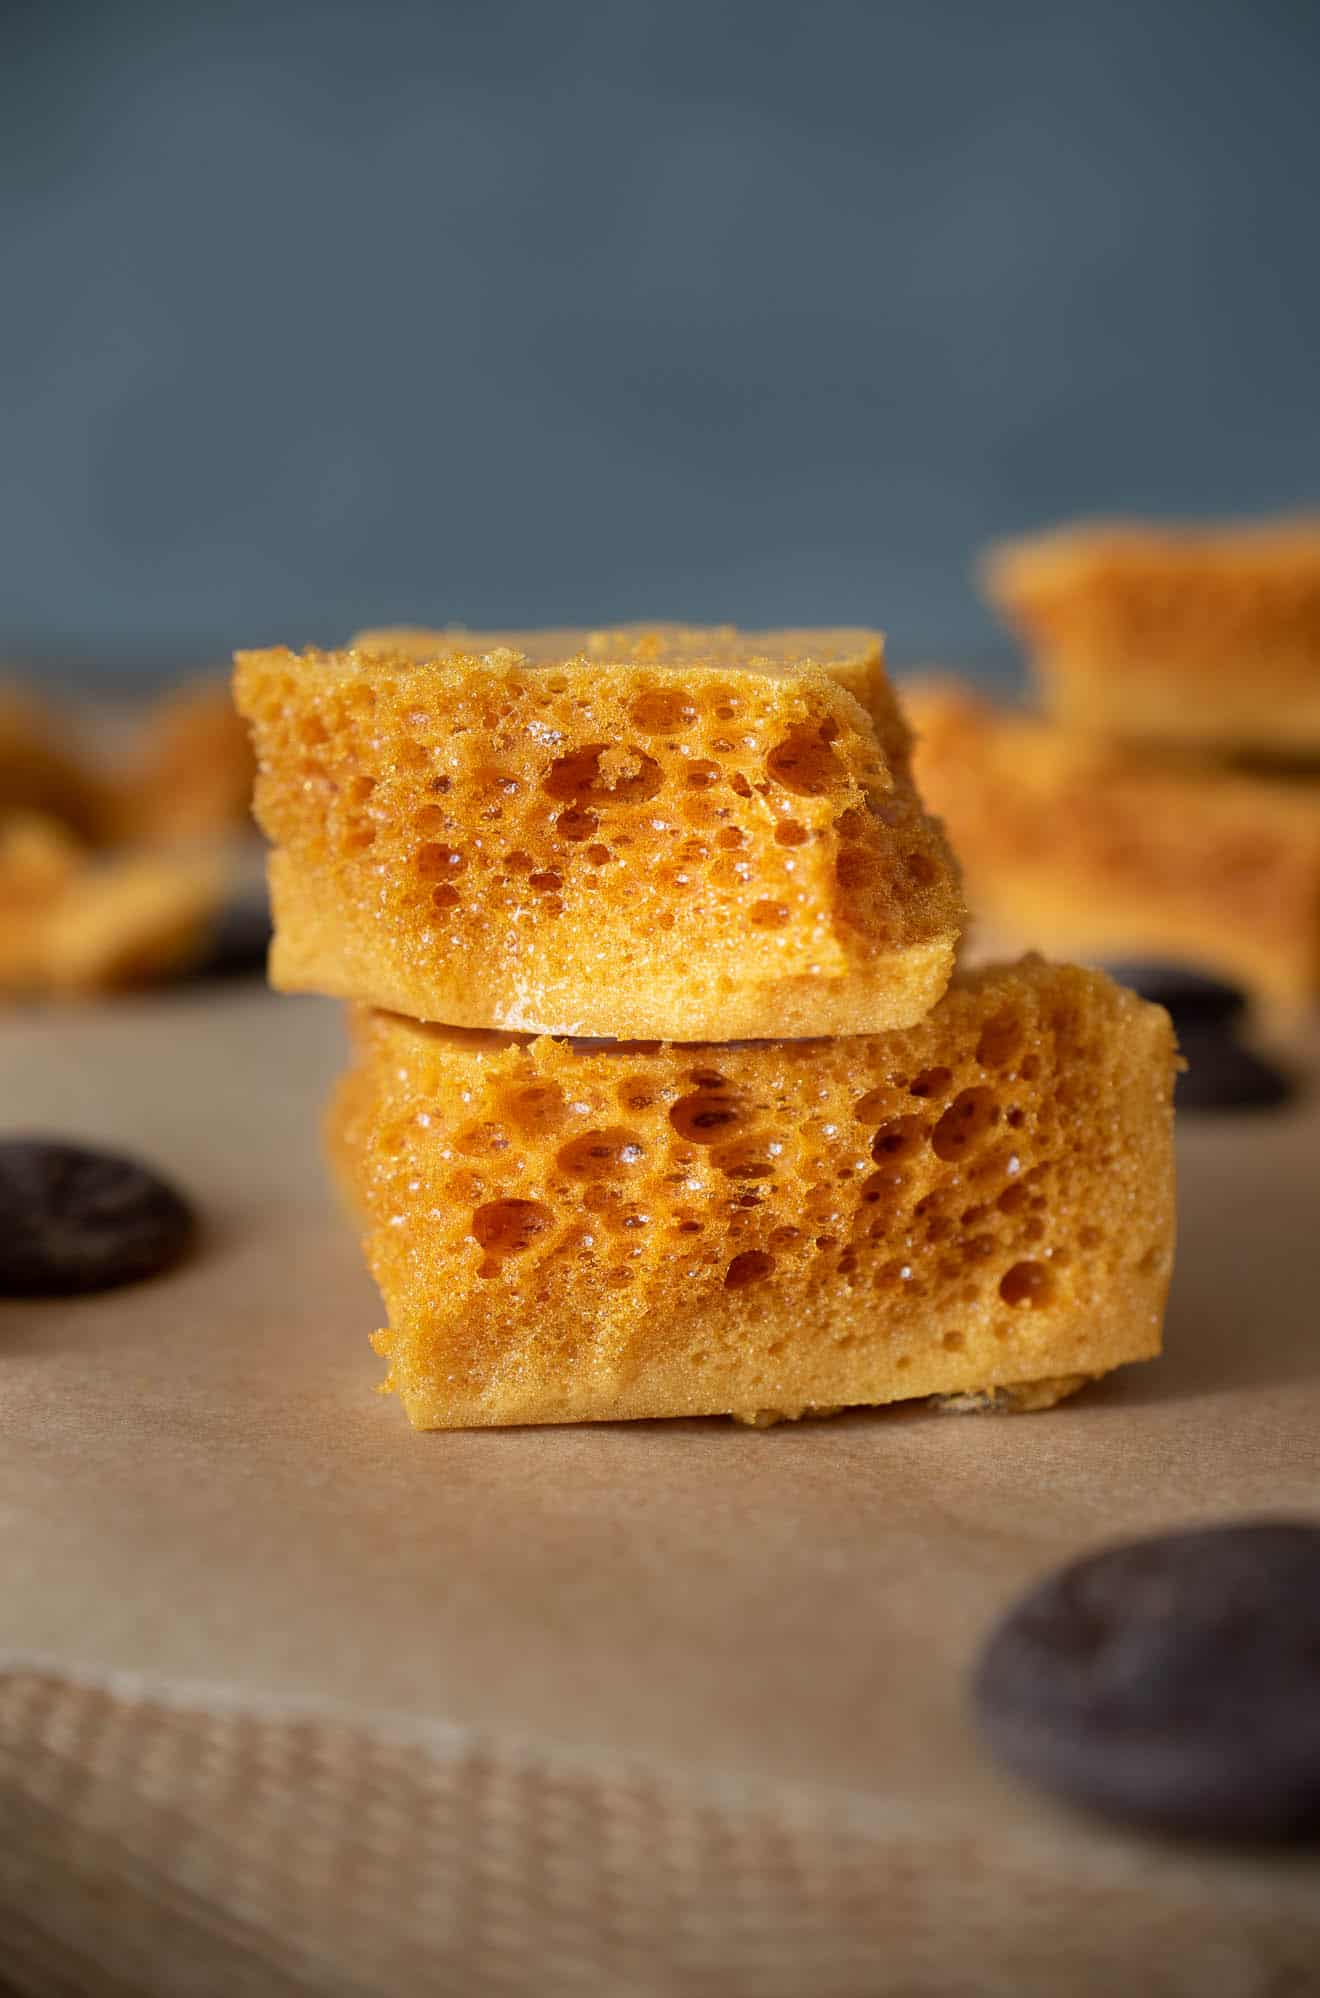 Cut pieces of 3 Ingredient Cinder Honeycomb Toffee showing the crispy holes